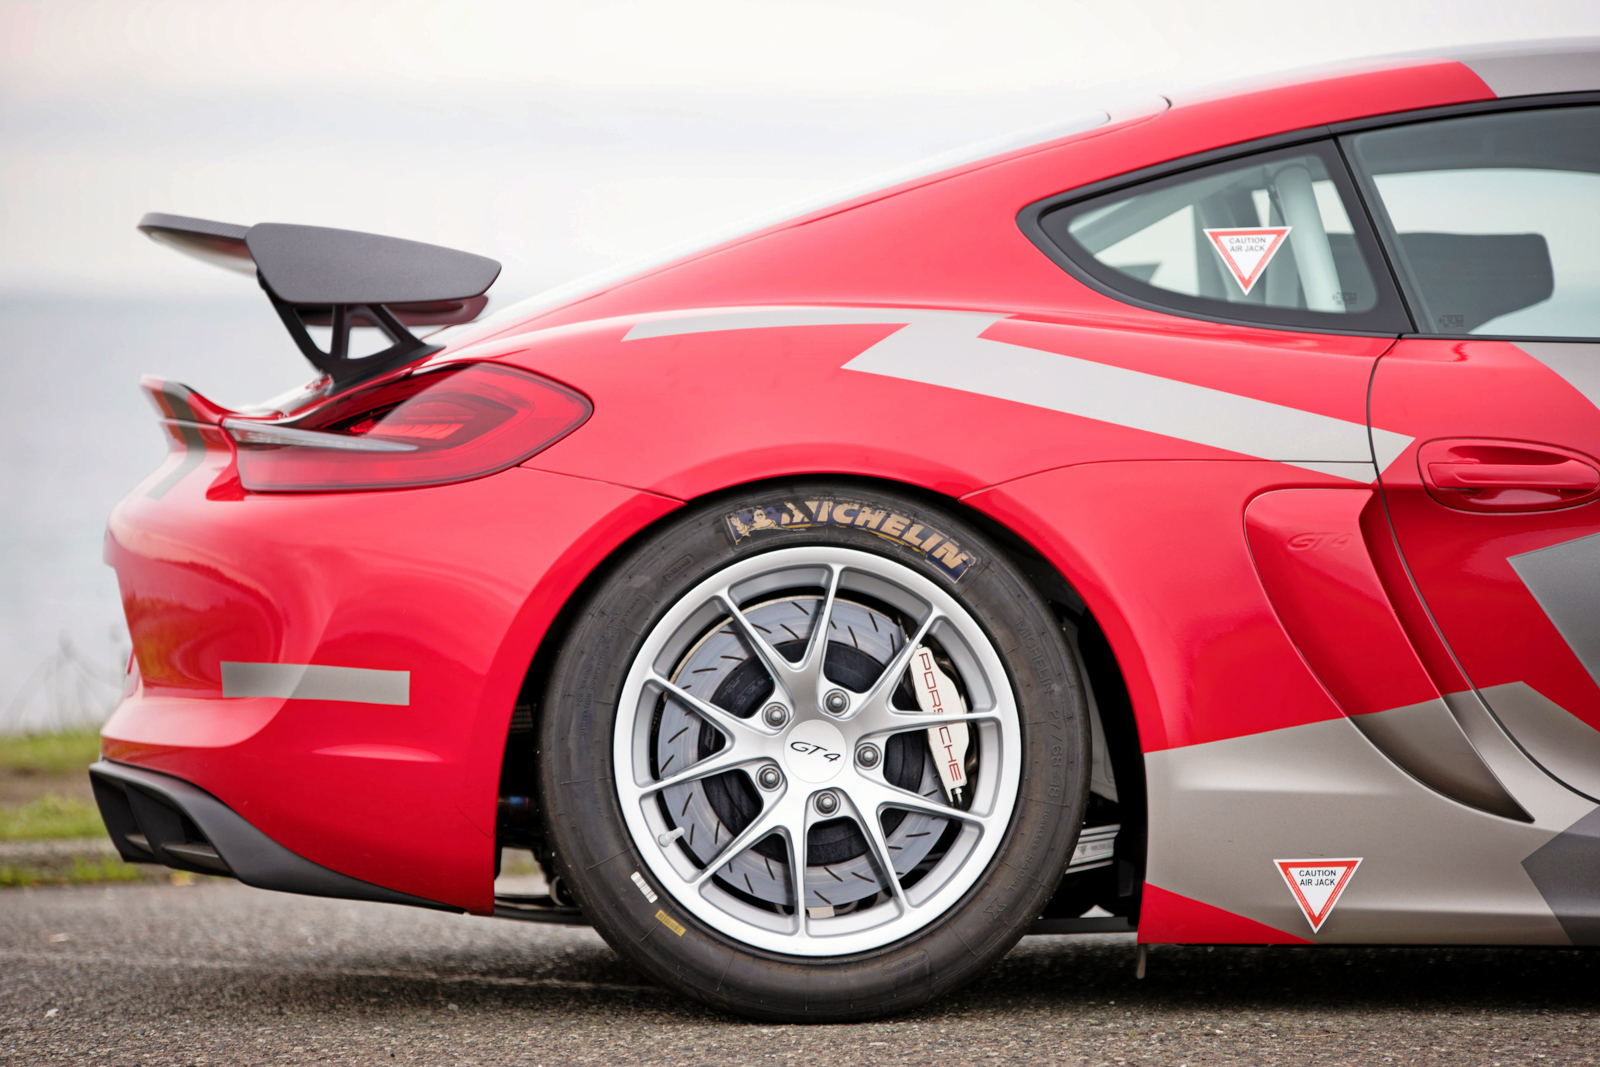 2016 Porsche Cayman GT4 Clubsport for sale